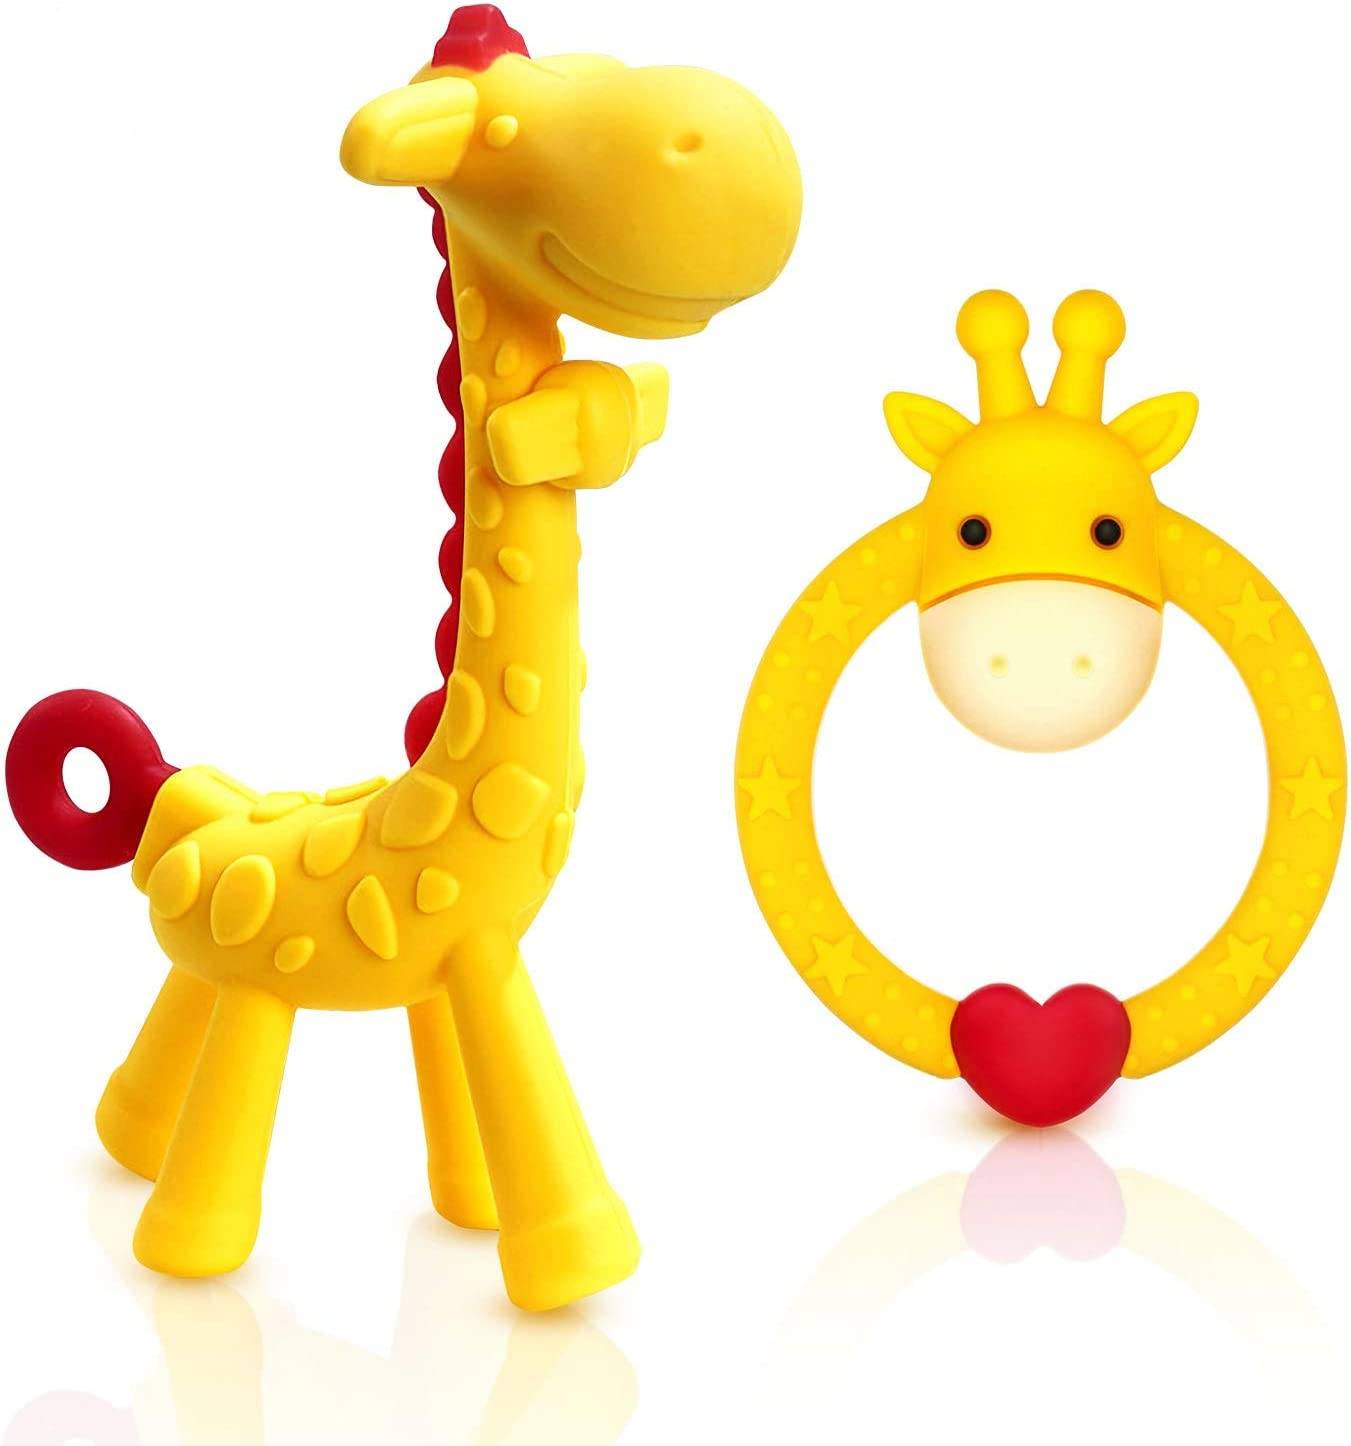 SHARE&CARE BPA Free 2 Silicone Giraffe Baby Teether Toy with Storage Case, for 3 Months Above Infant Sore Gums Pain Relief, Set of 2 Different Teething Toys (Yellow)